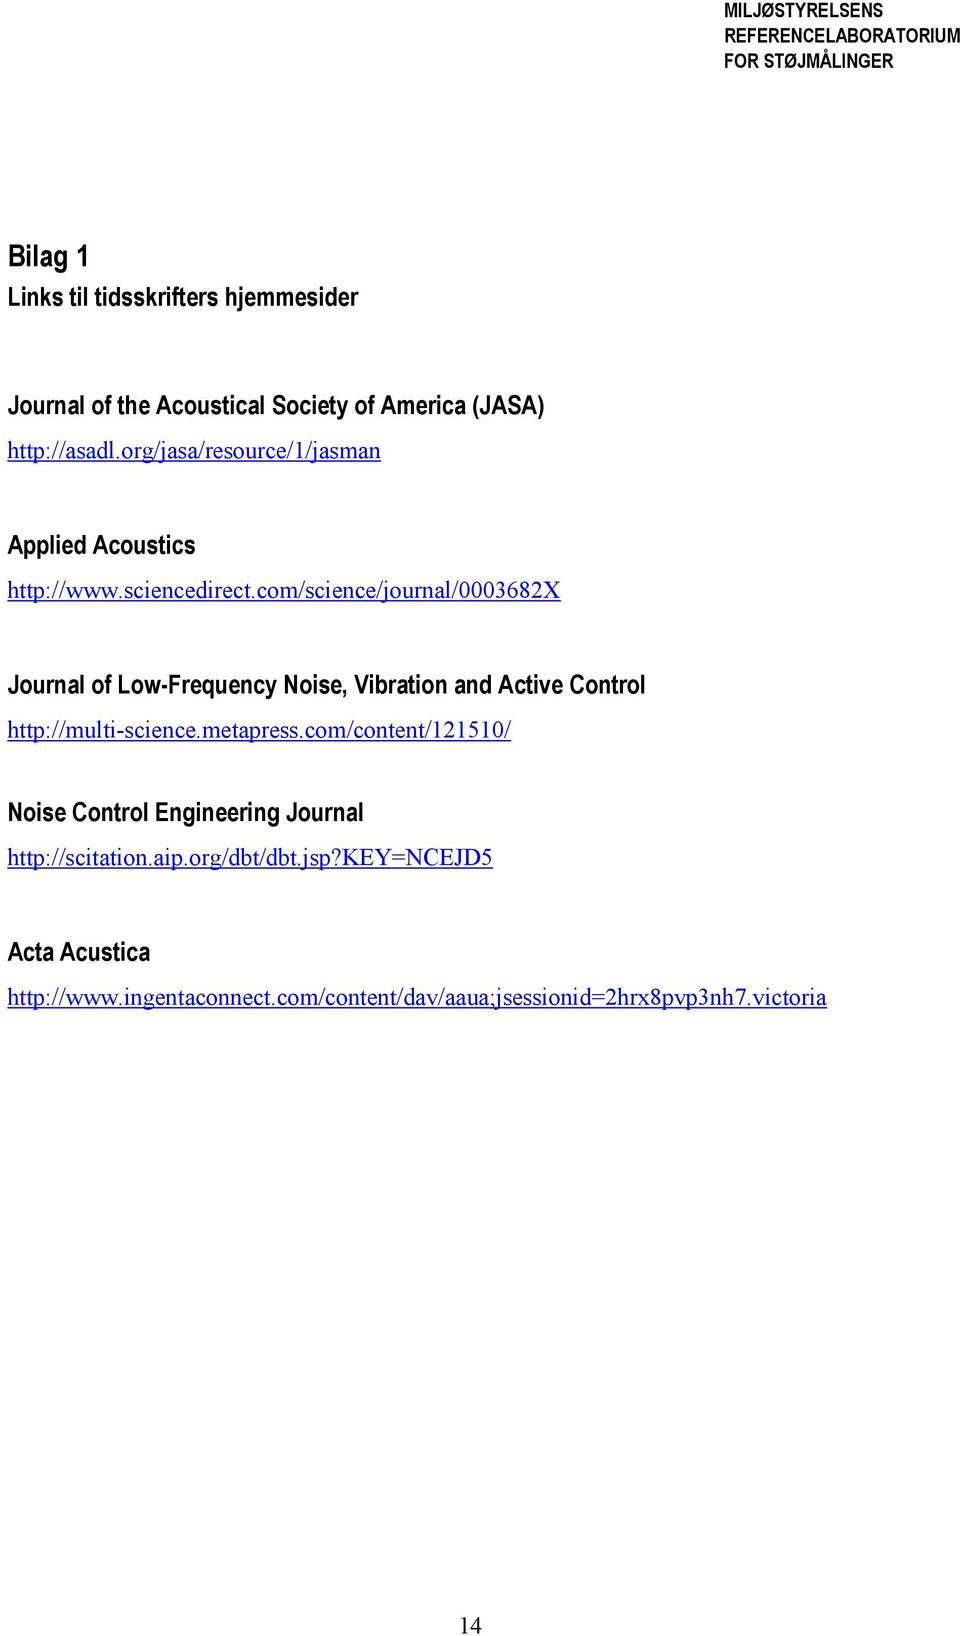 com/science/journal/0003682x Journal of Low-Frequency Noise, Vibration and Active Control http://multi-science.metapress.